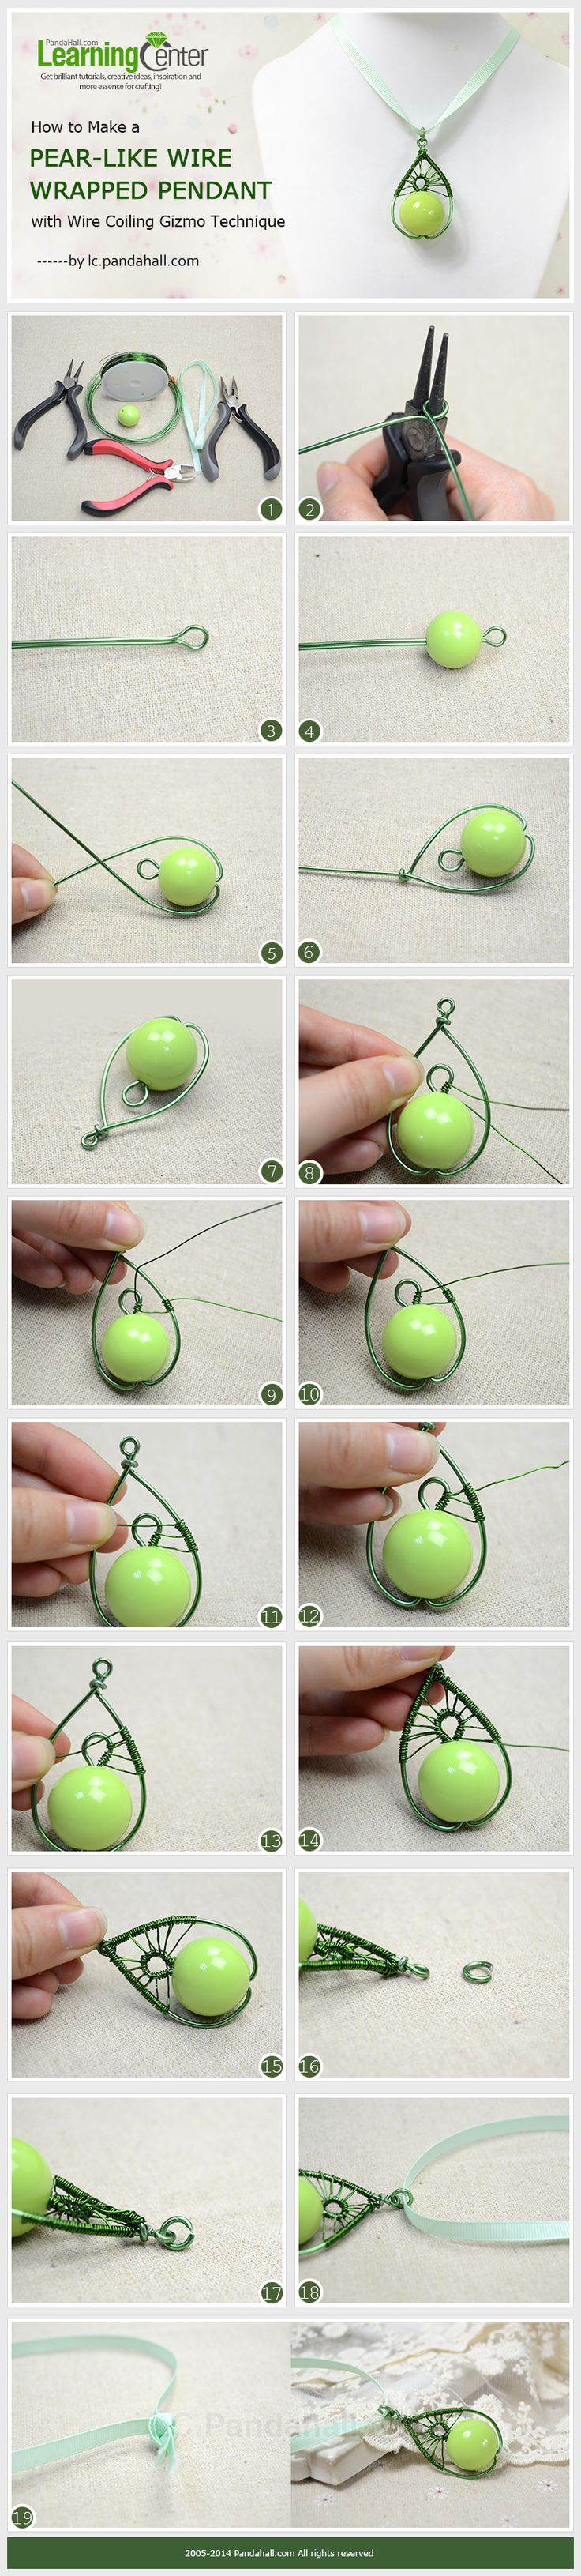 Like it? Click to Know How to Make a Pear-Like Wire Wrapped Pendant with Wire Coiling Gizmo Technique